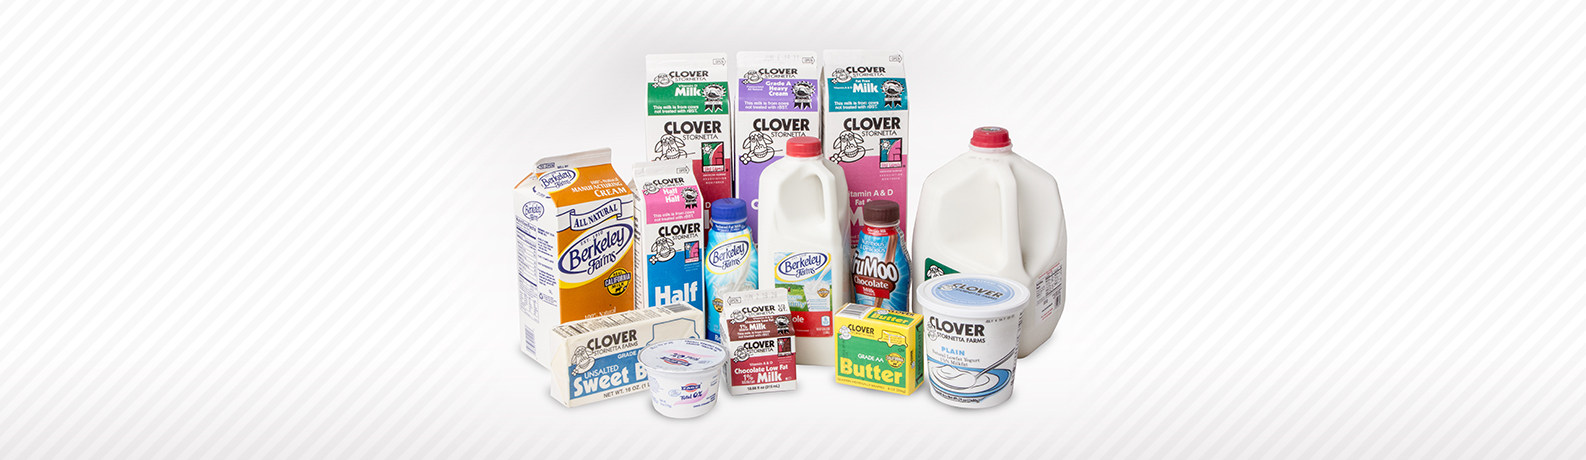 Troia_WebDesign2014_Products-HeaderImages_Dairy